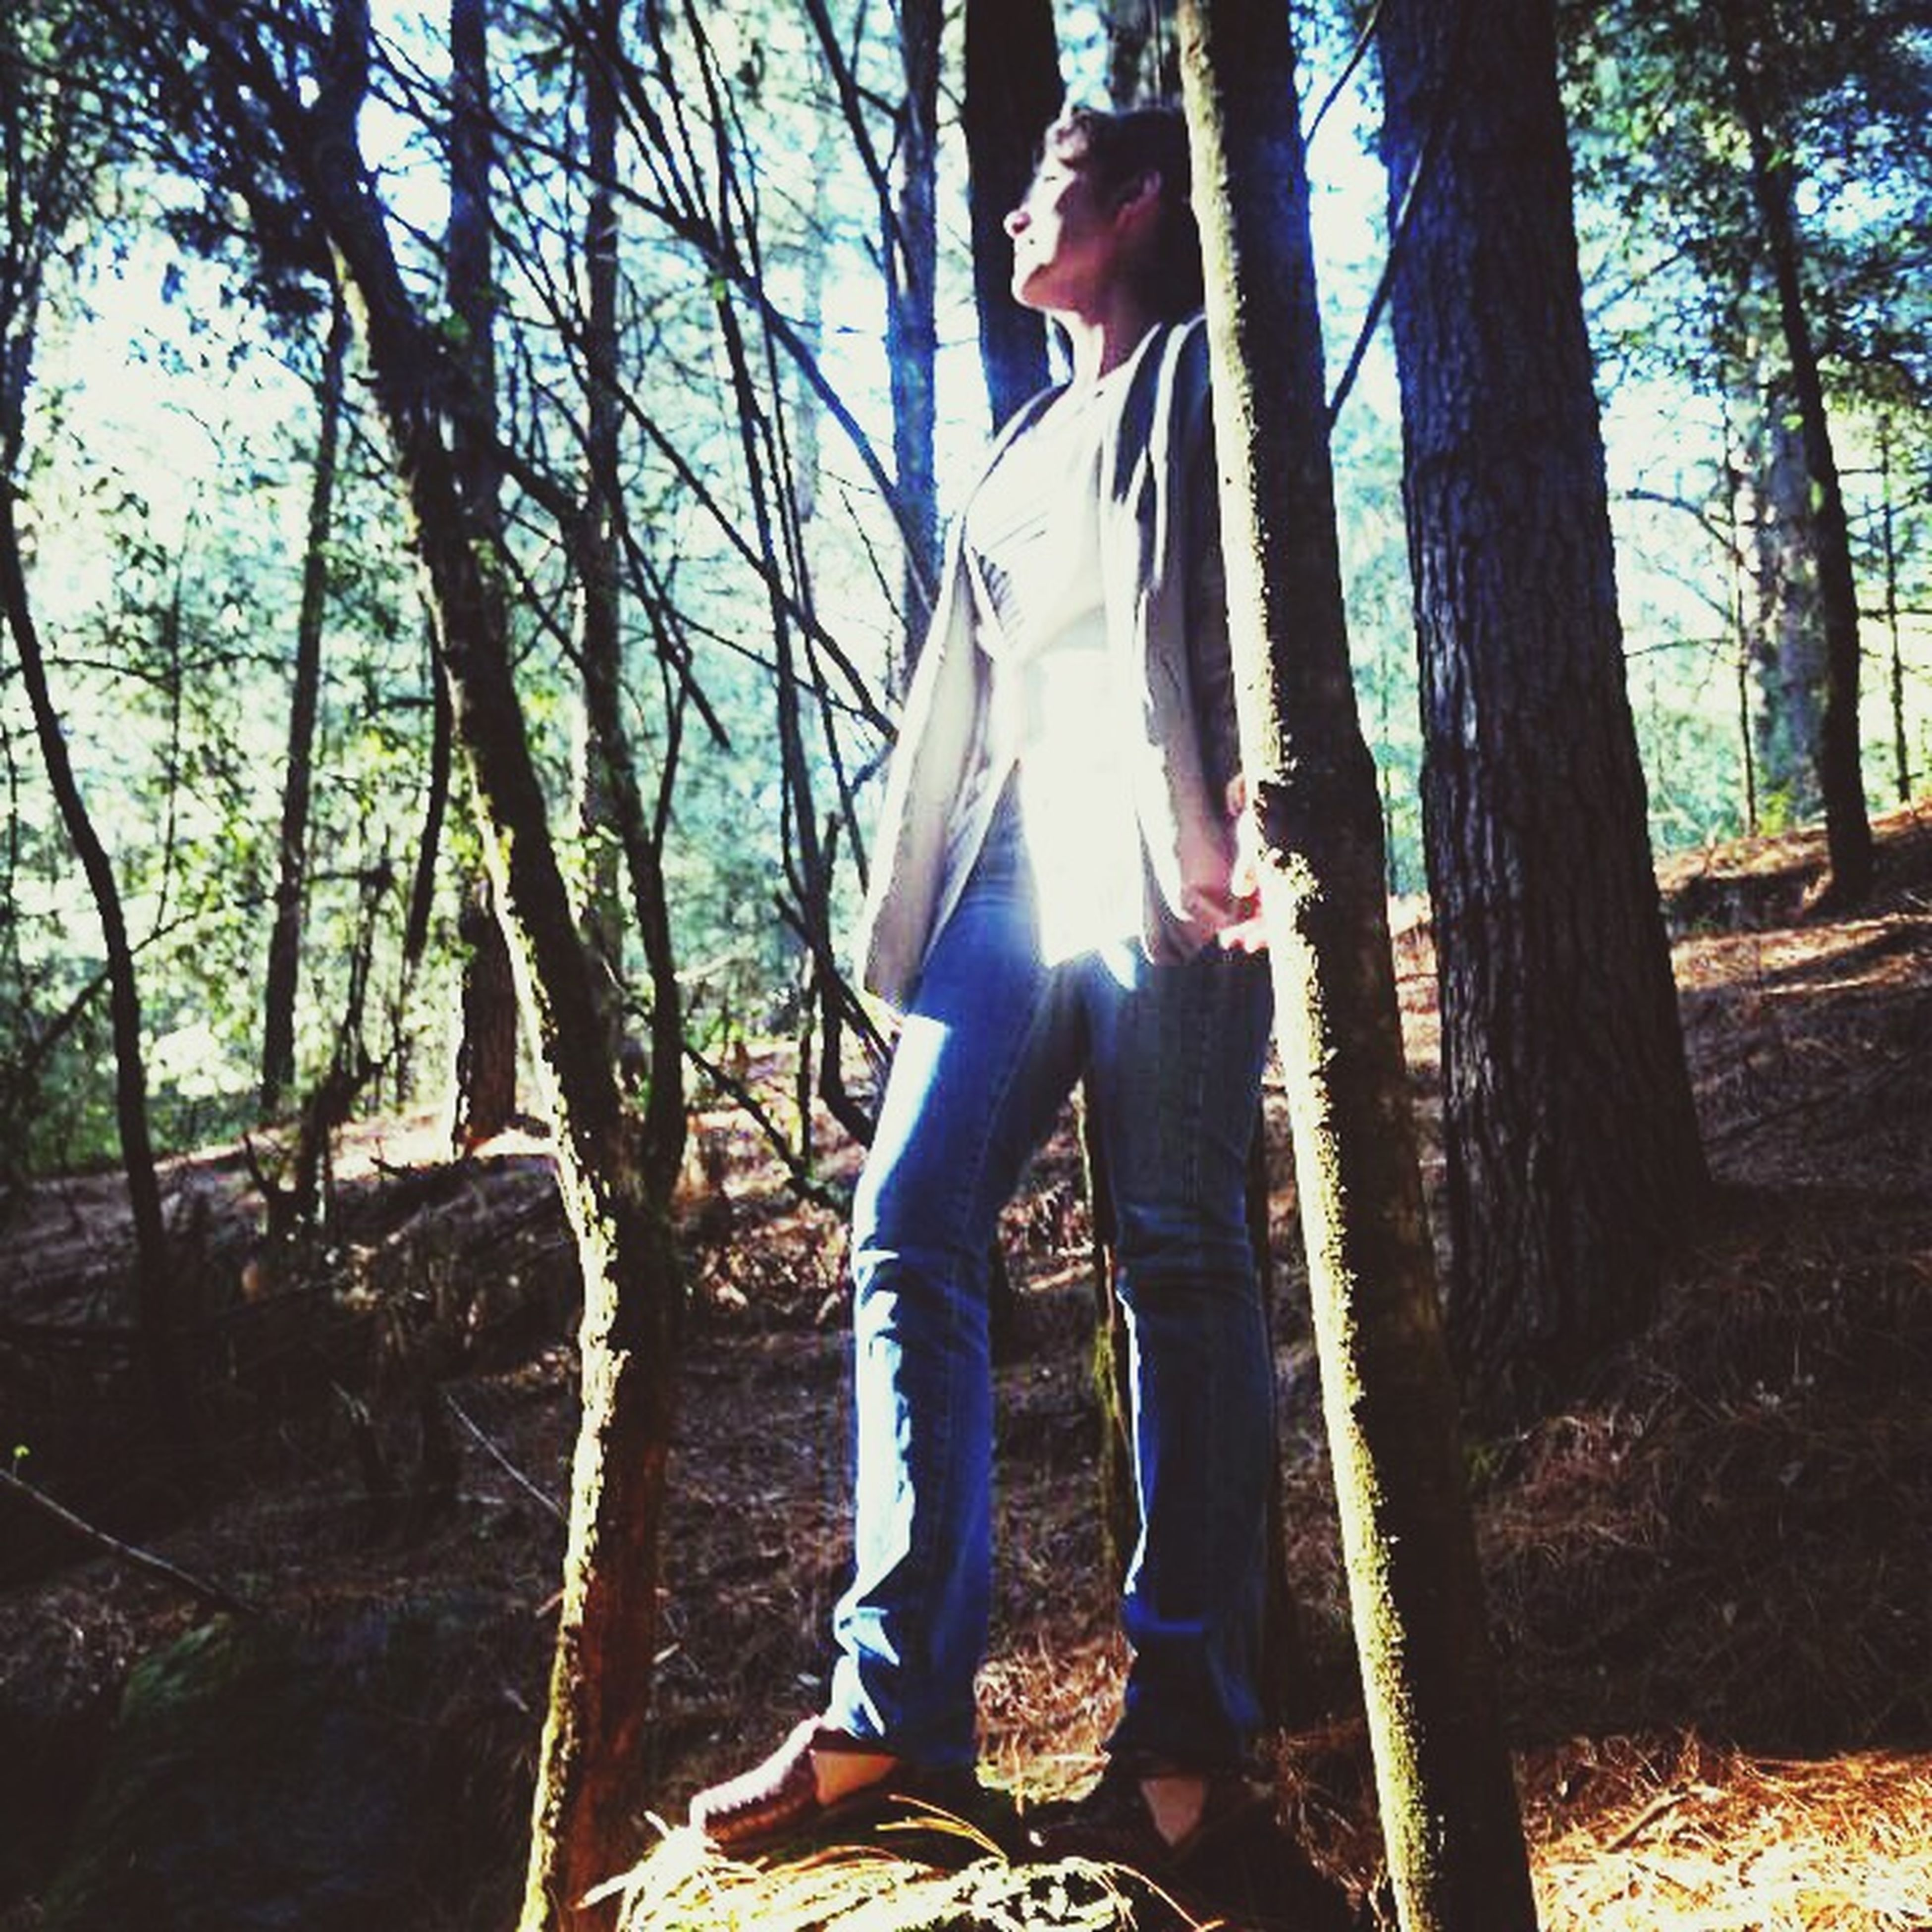 tree, sun, tree trunk, sunlight, sunbeam, leisure activity, lifestyles, lens flare, tranquility, nature, forest, sky, tranquil scene, landscape, standing, beauty in nature, low section, non-urban scene